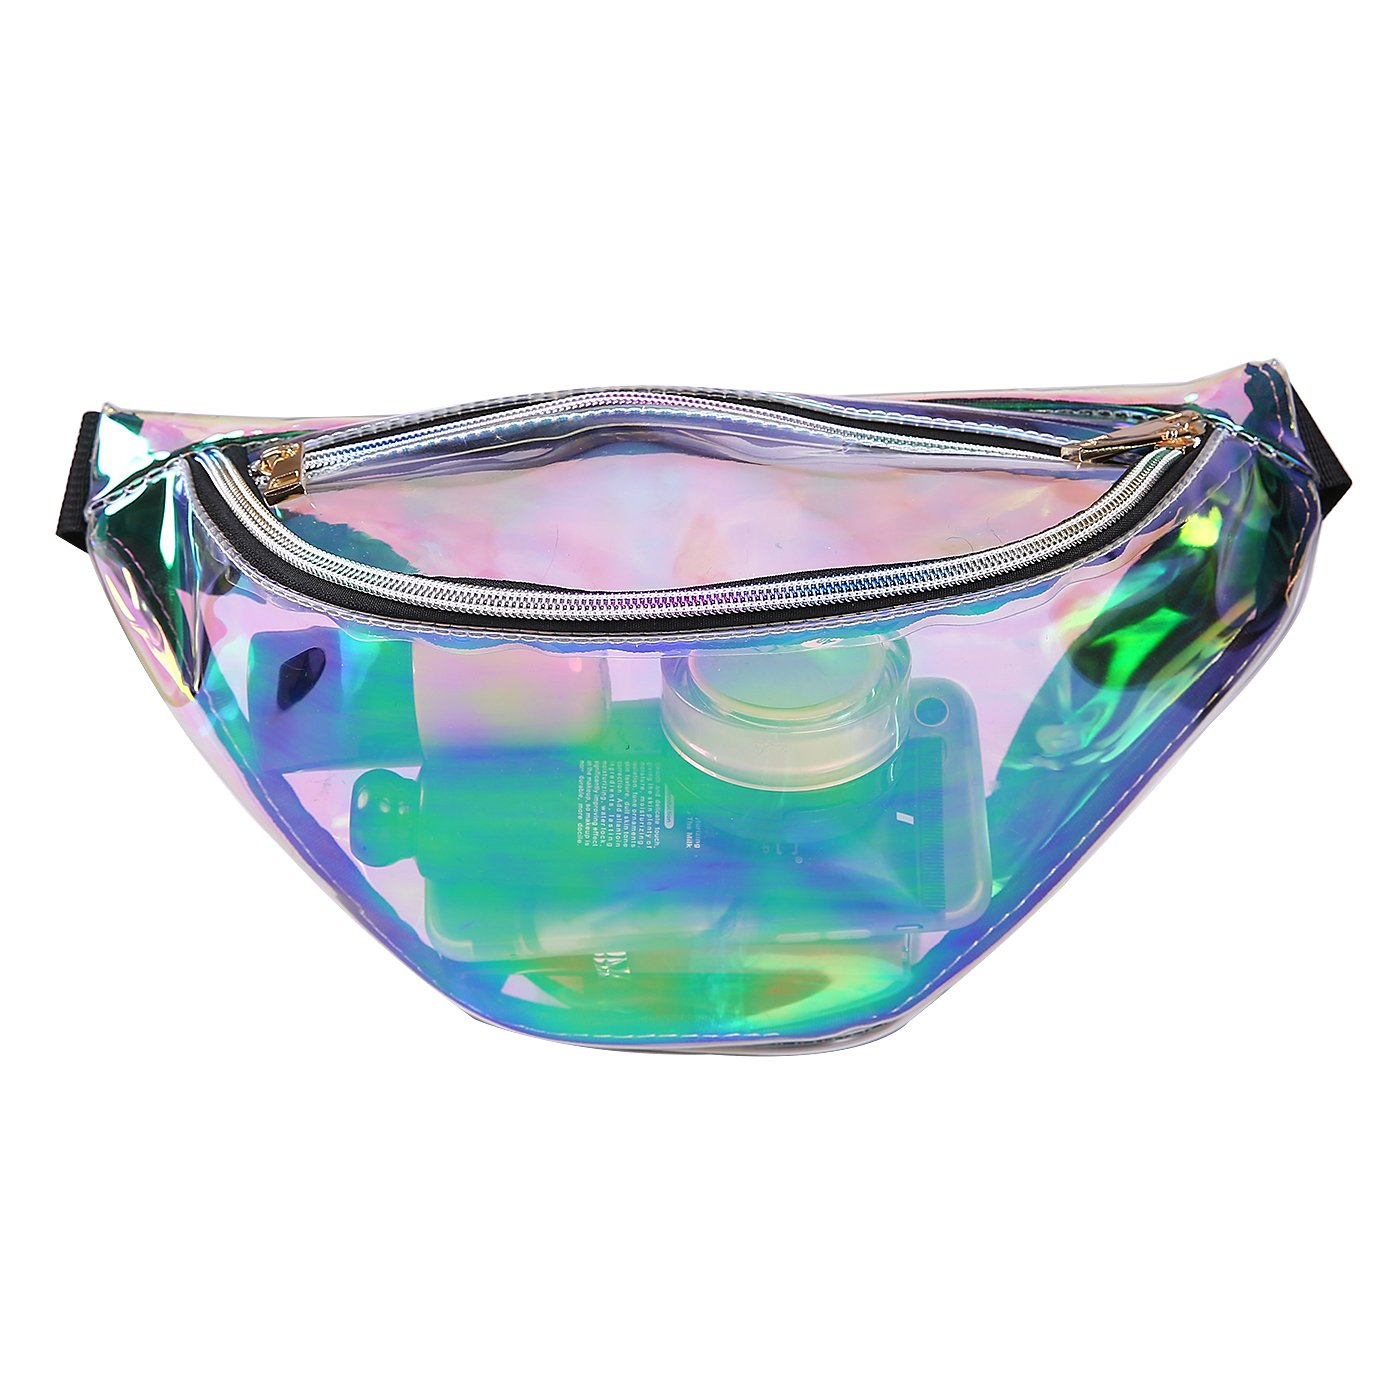 HDE Shiny Fanny Pack for Rave Festival Travel Waist Pack Holographic Bum Bag